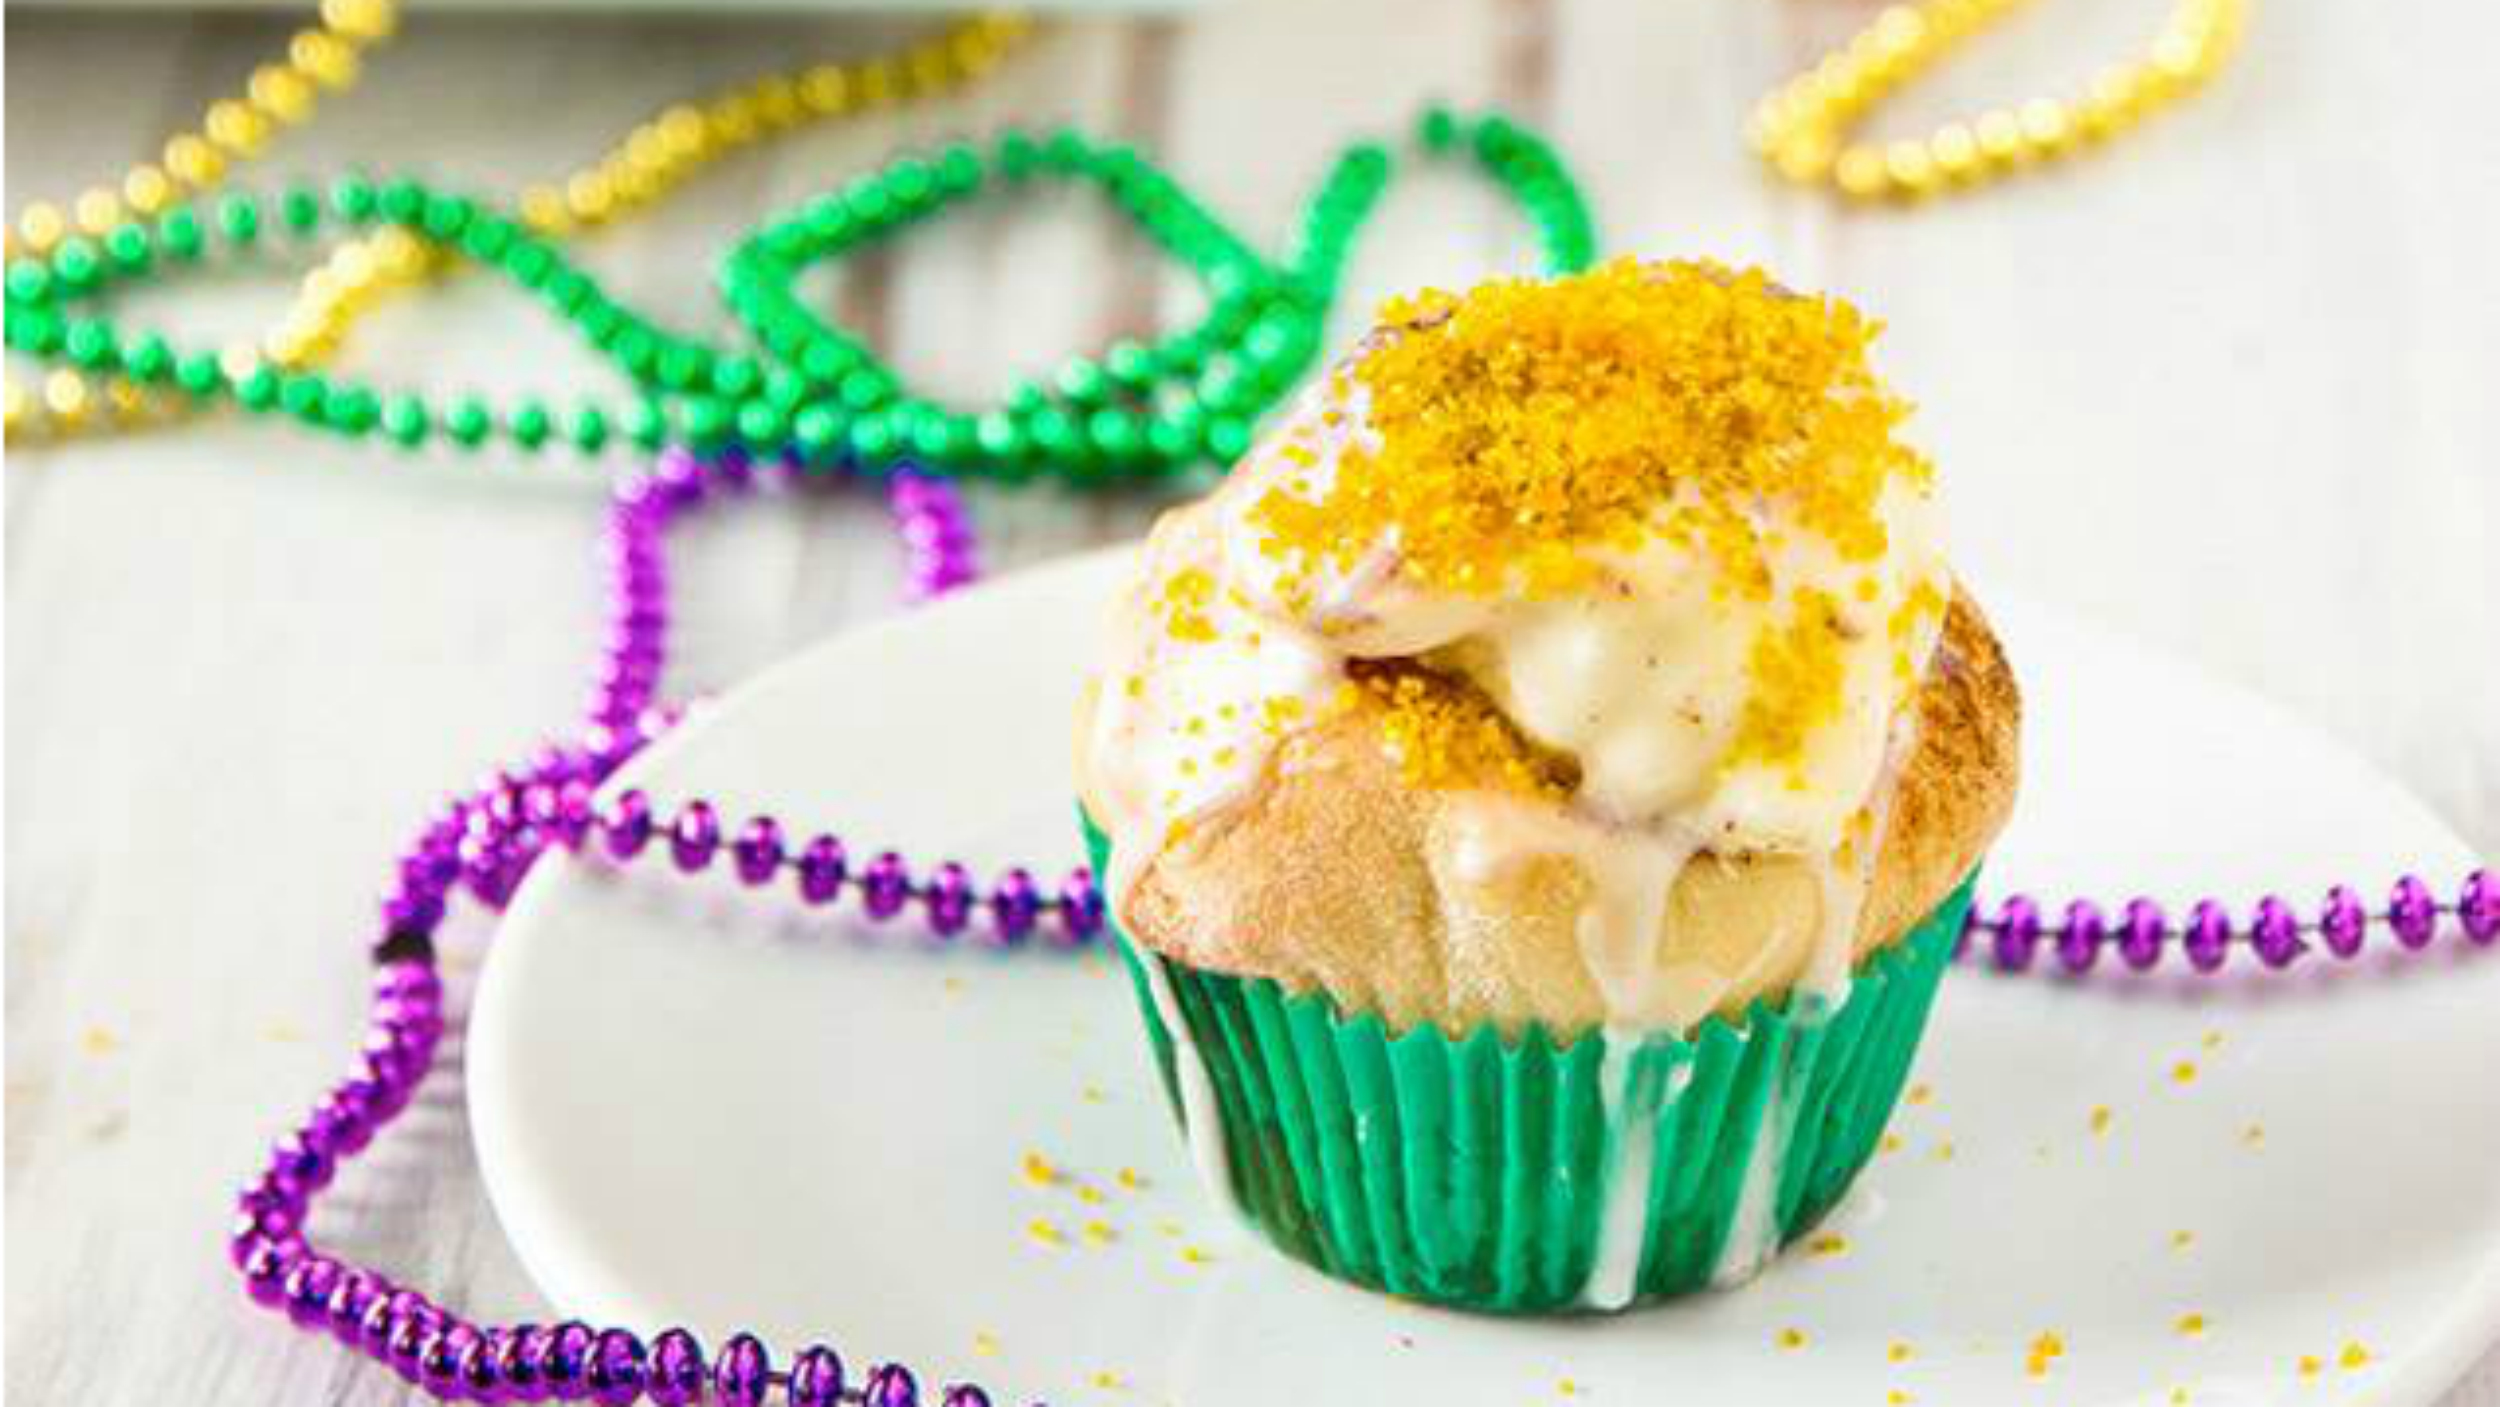 ... Mardi Gras desserts that put the 'fat' in Fat Tuesday - TODAY.com